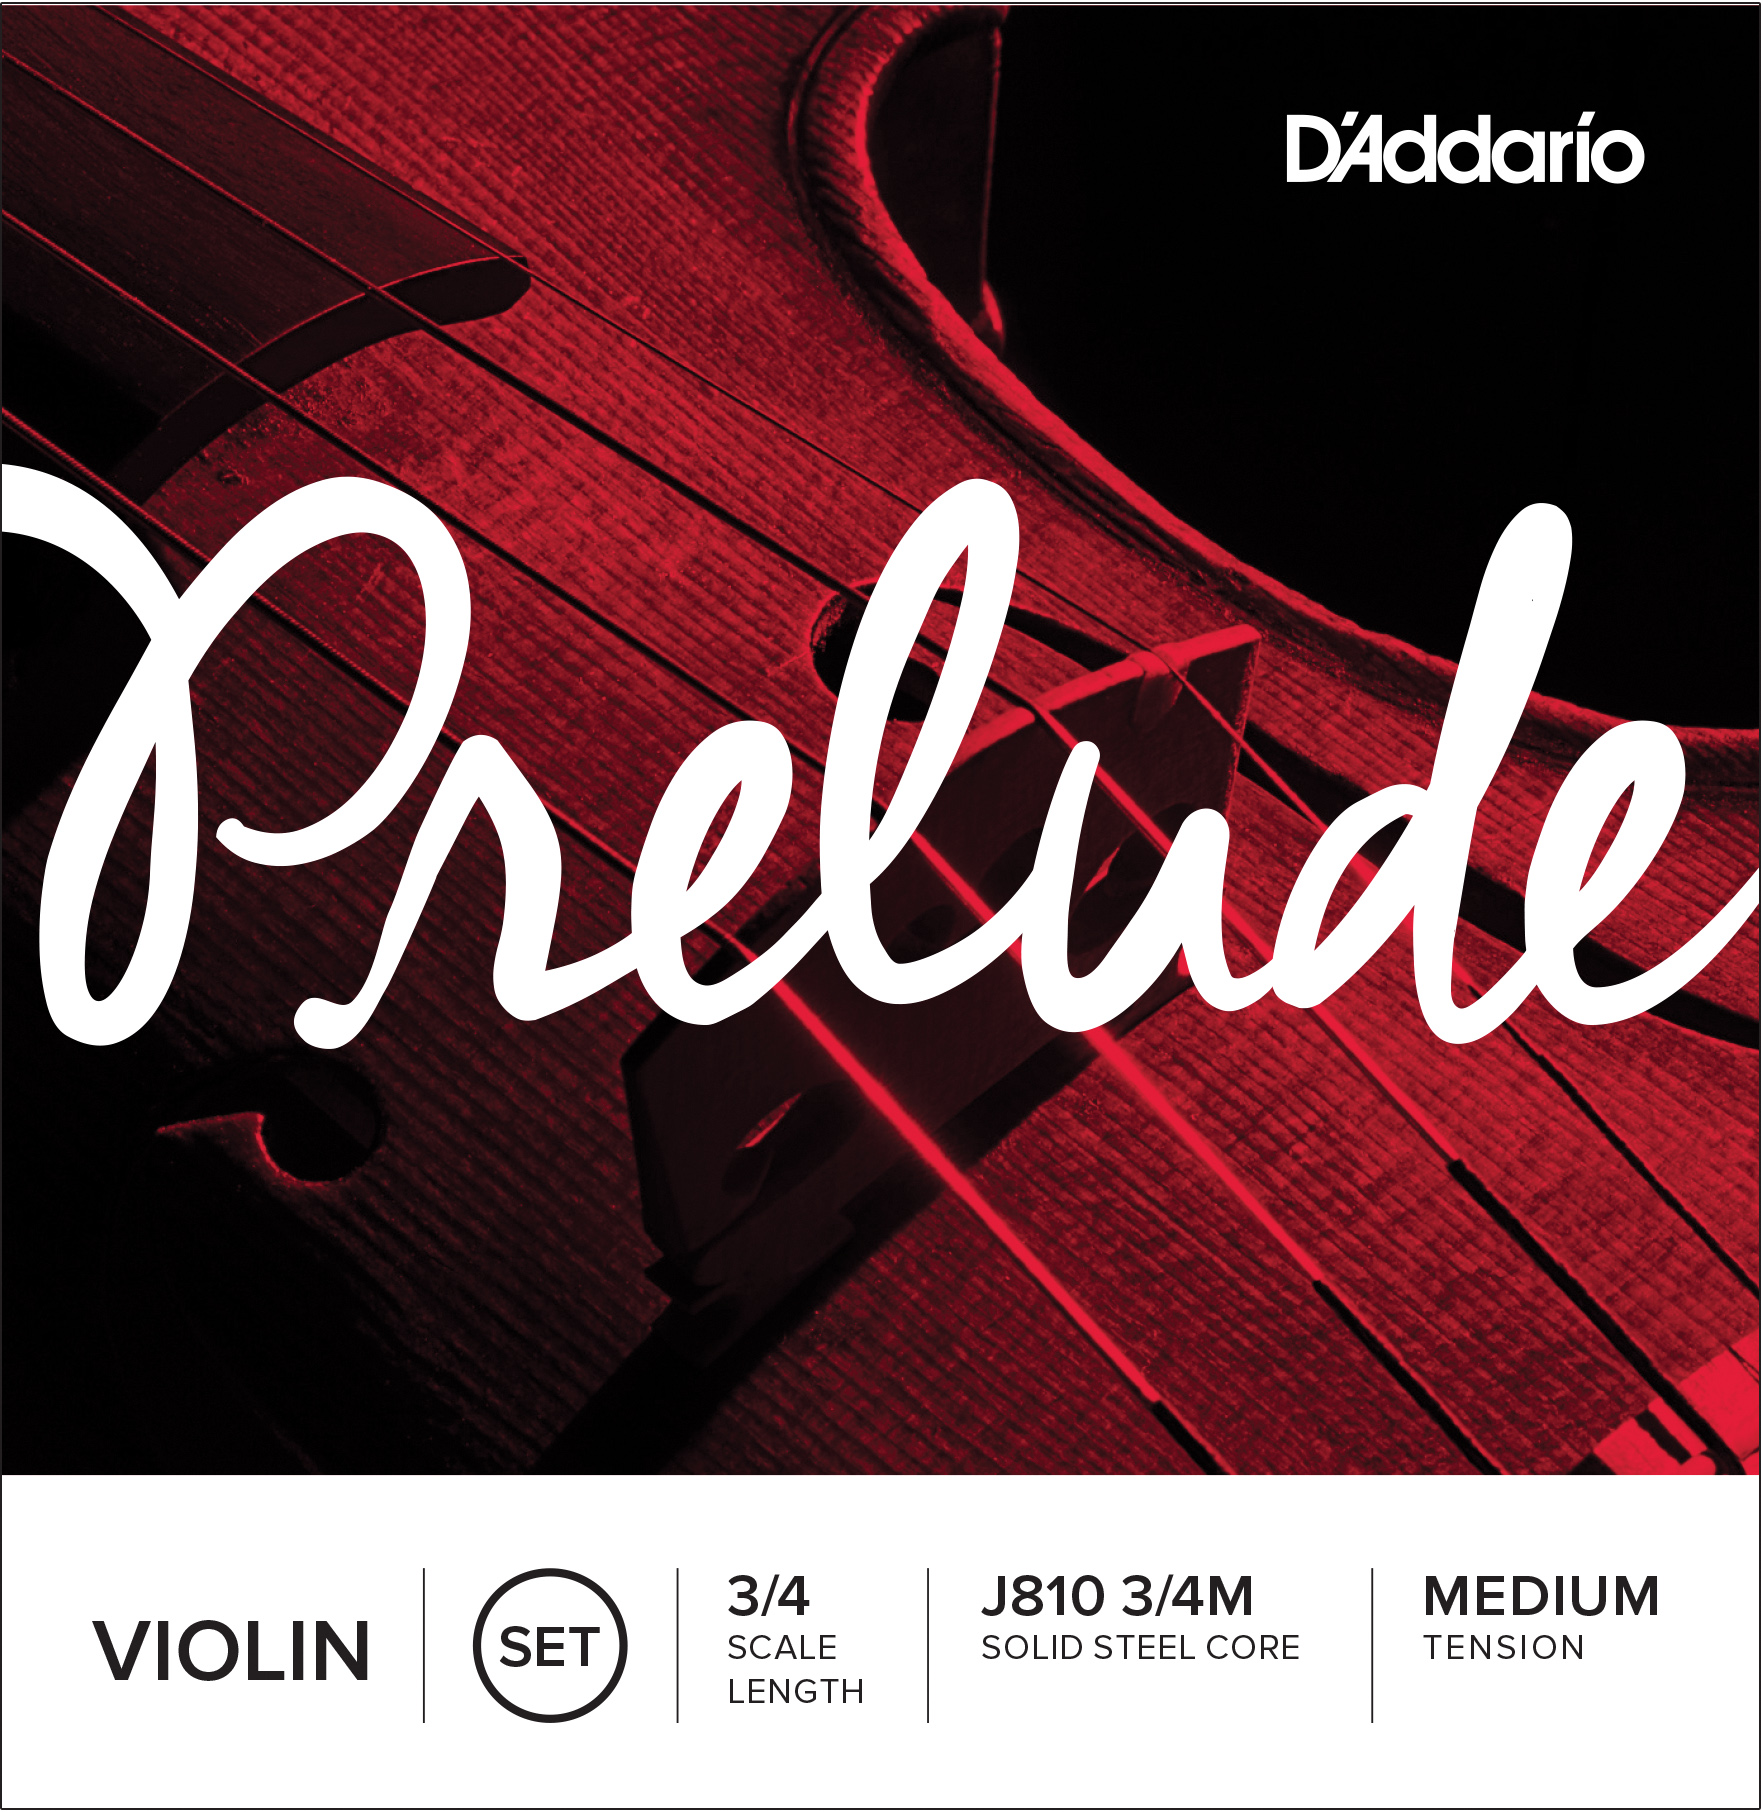 D'Addario Prelude Violin String Set 3/4 Scale Medium Tension